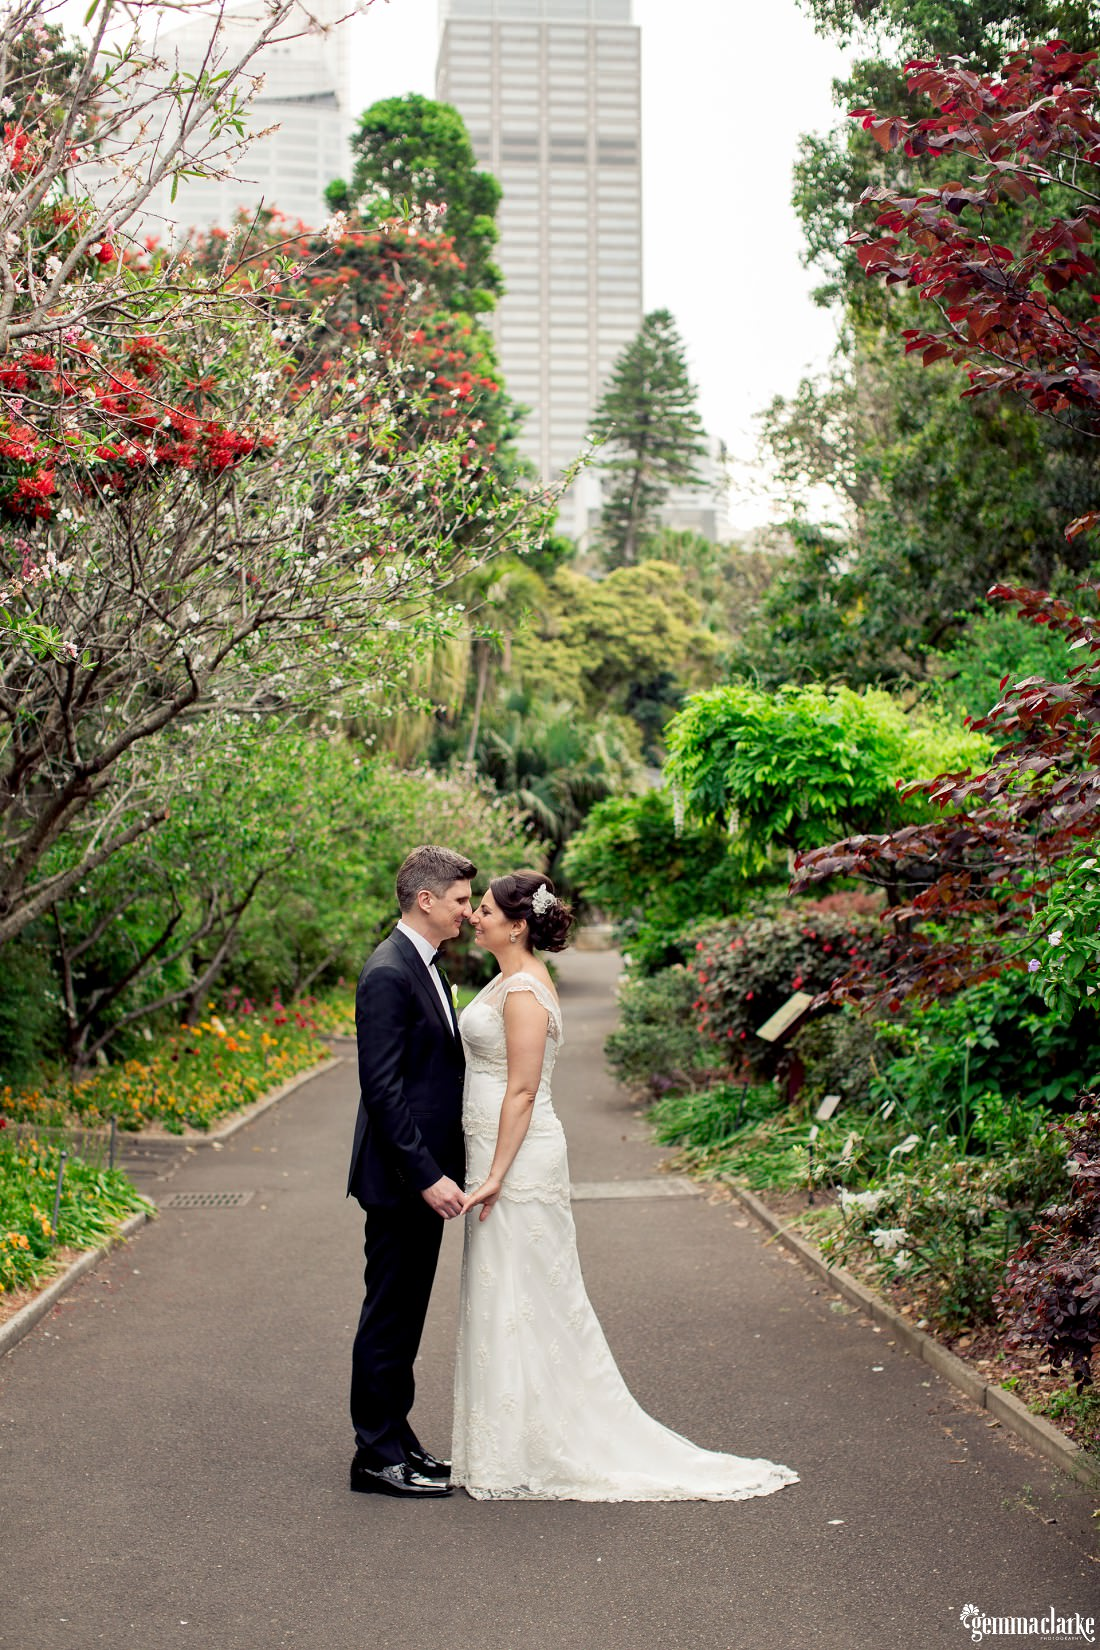 A bride and groom holding hands and standing nose to nose in a garden - Royal Botanic Gardens Wedding